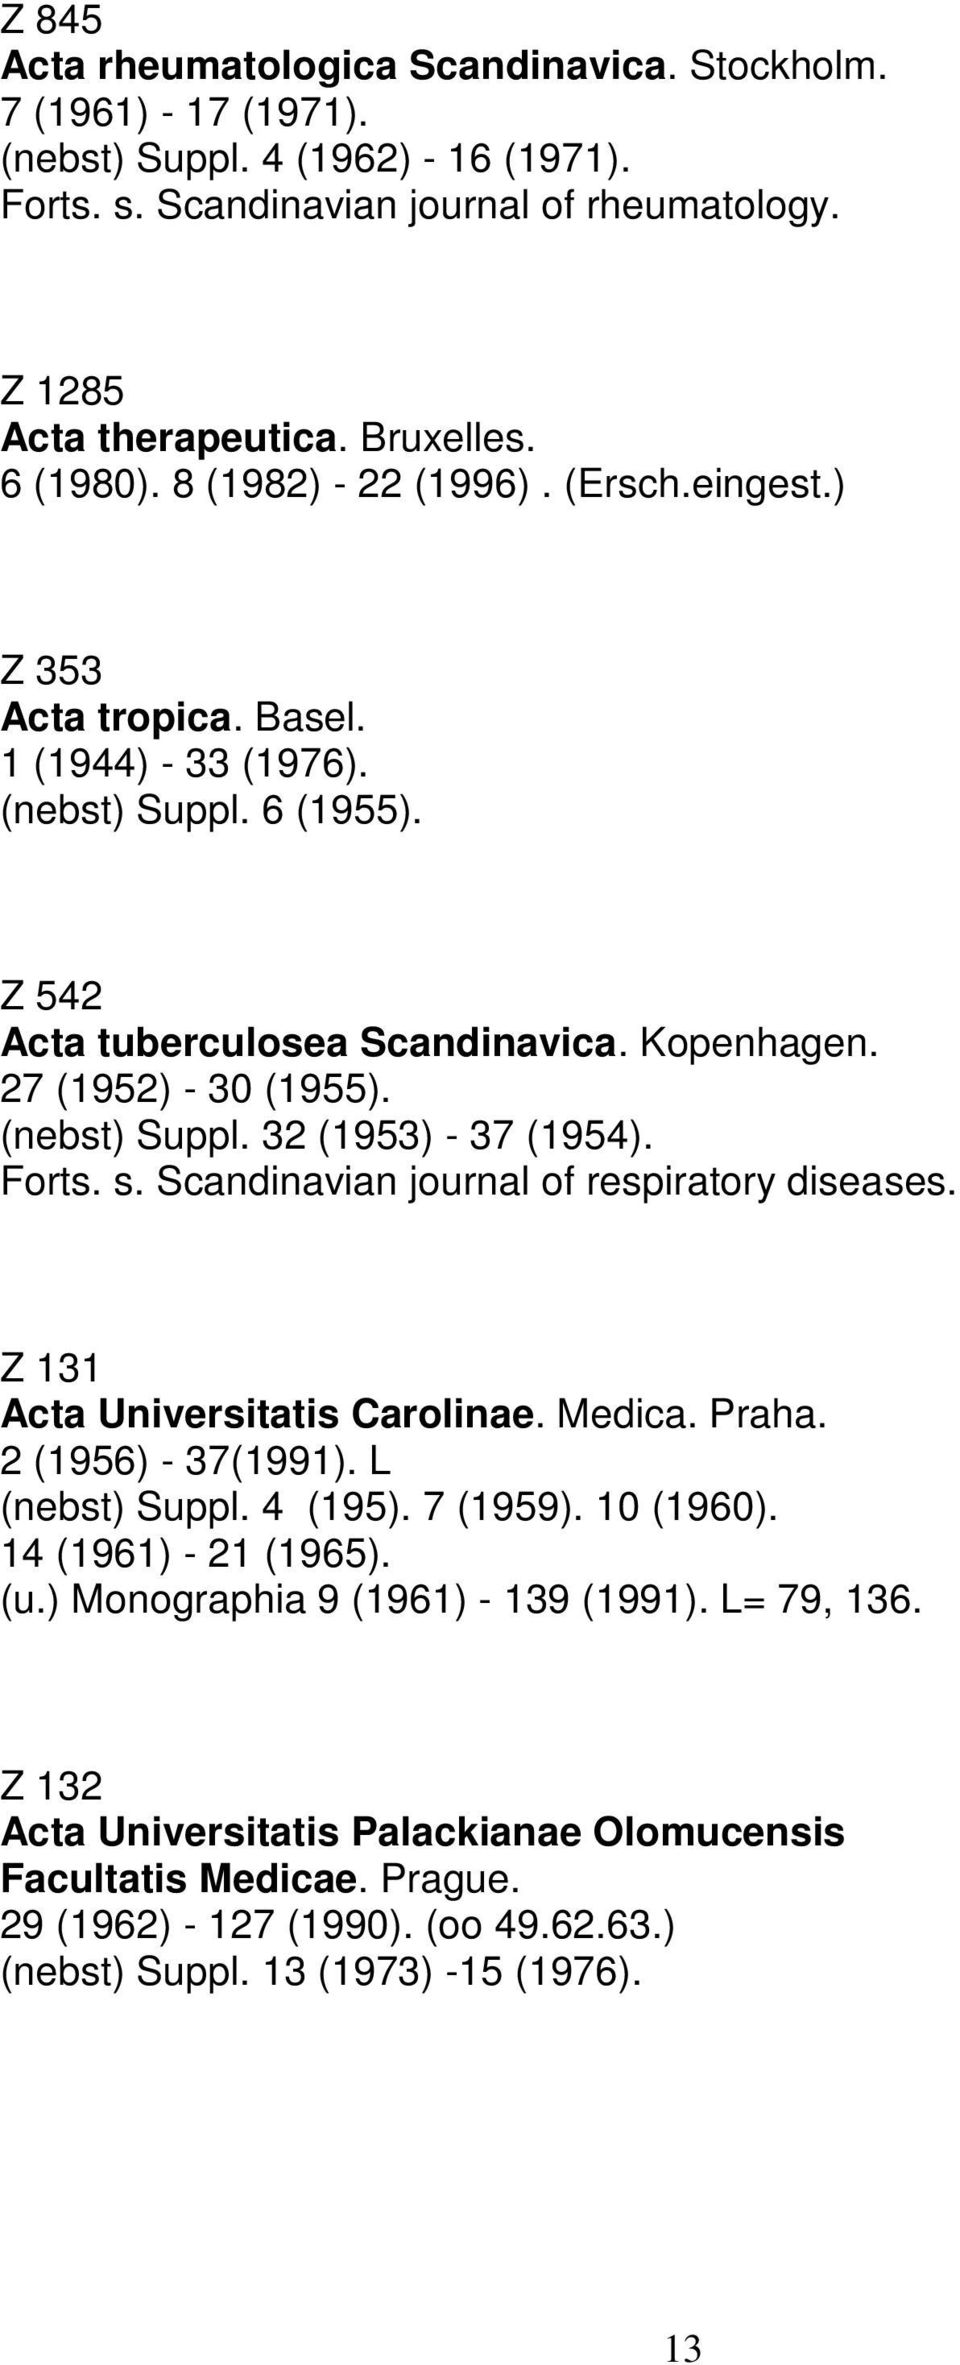 32 (1953) - 37 (1954). Forts. s. Scandinavian journal of respiratory diseases. Z 131 Acta Universitatis Carolinae. Medica. Praha. 2 (1956) - 37(1991). L 4 (195). 7 (1959). 10 (1960).